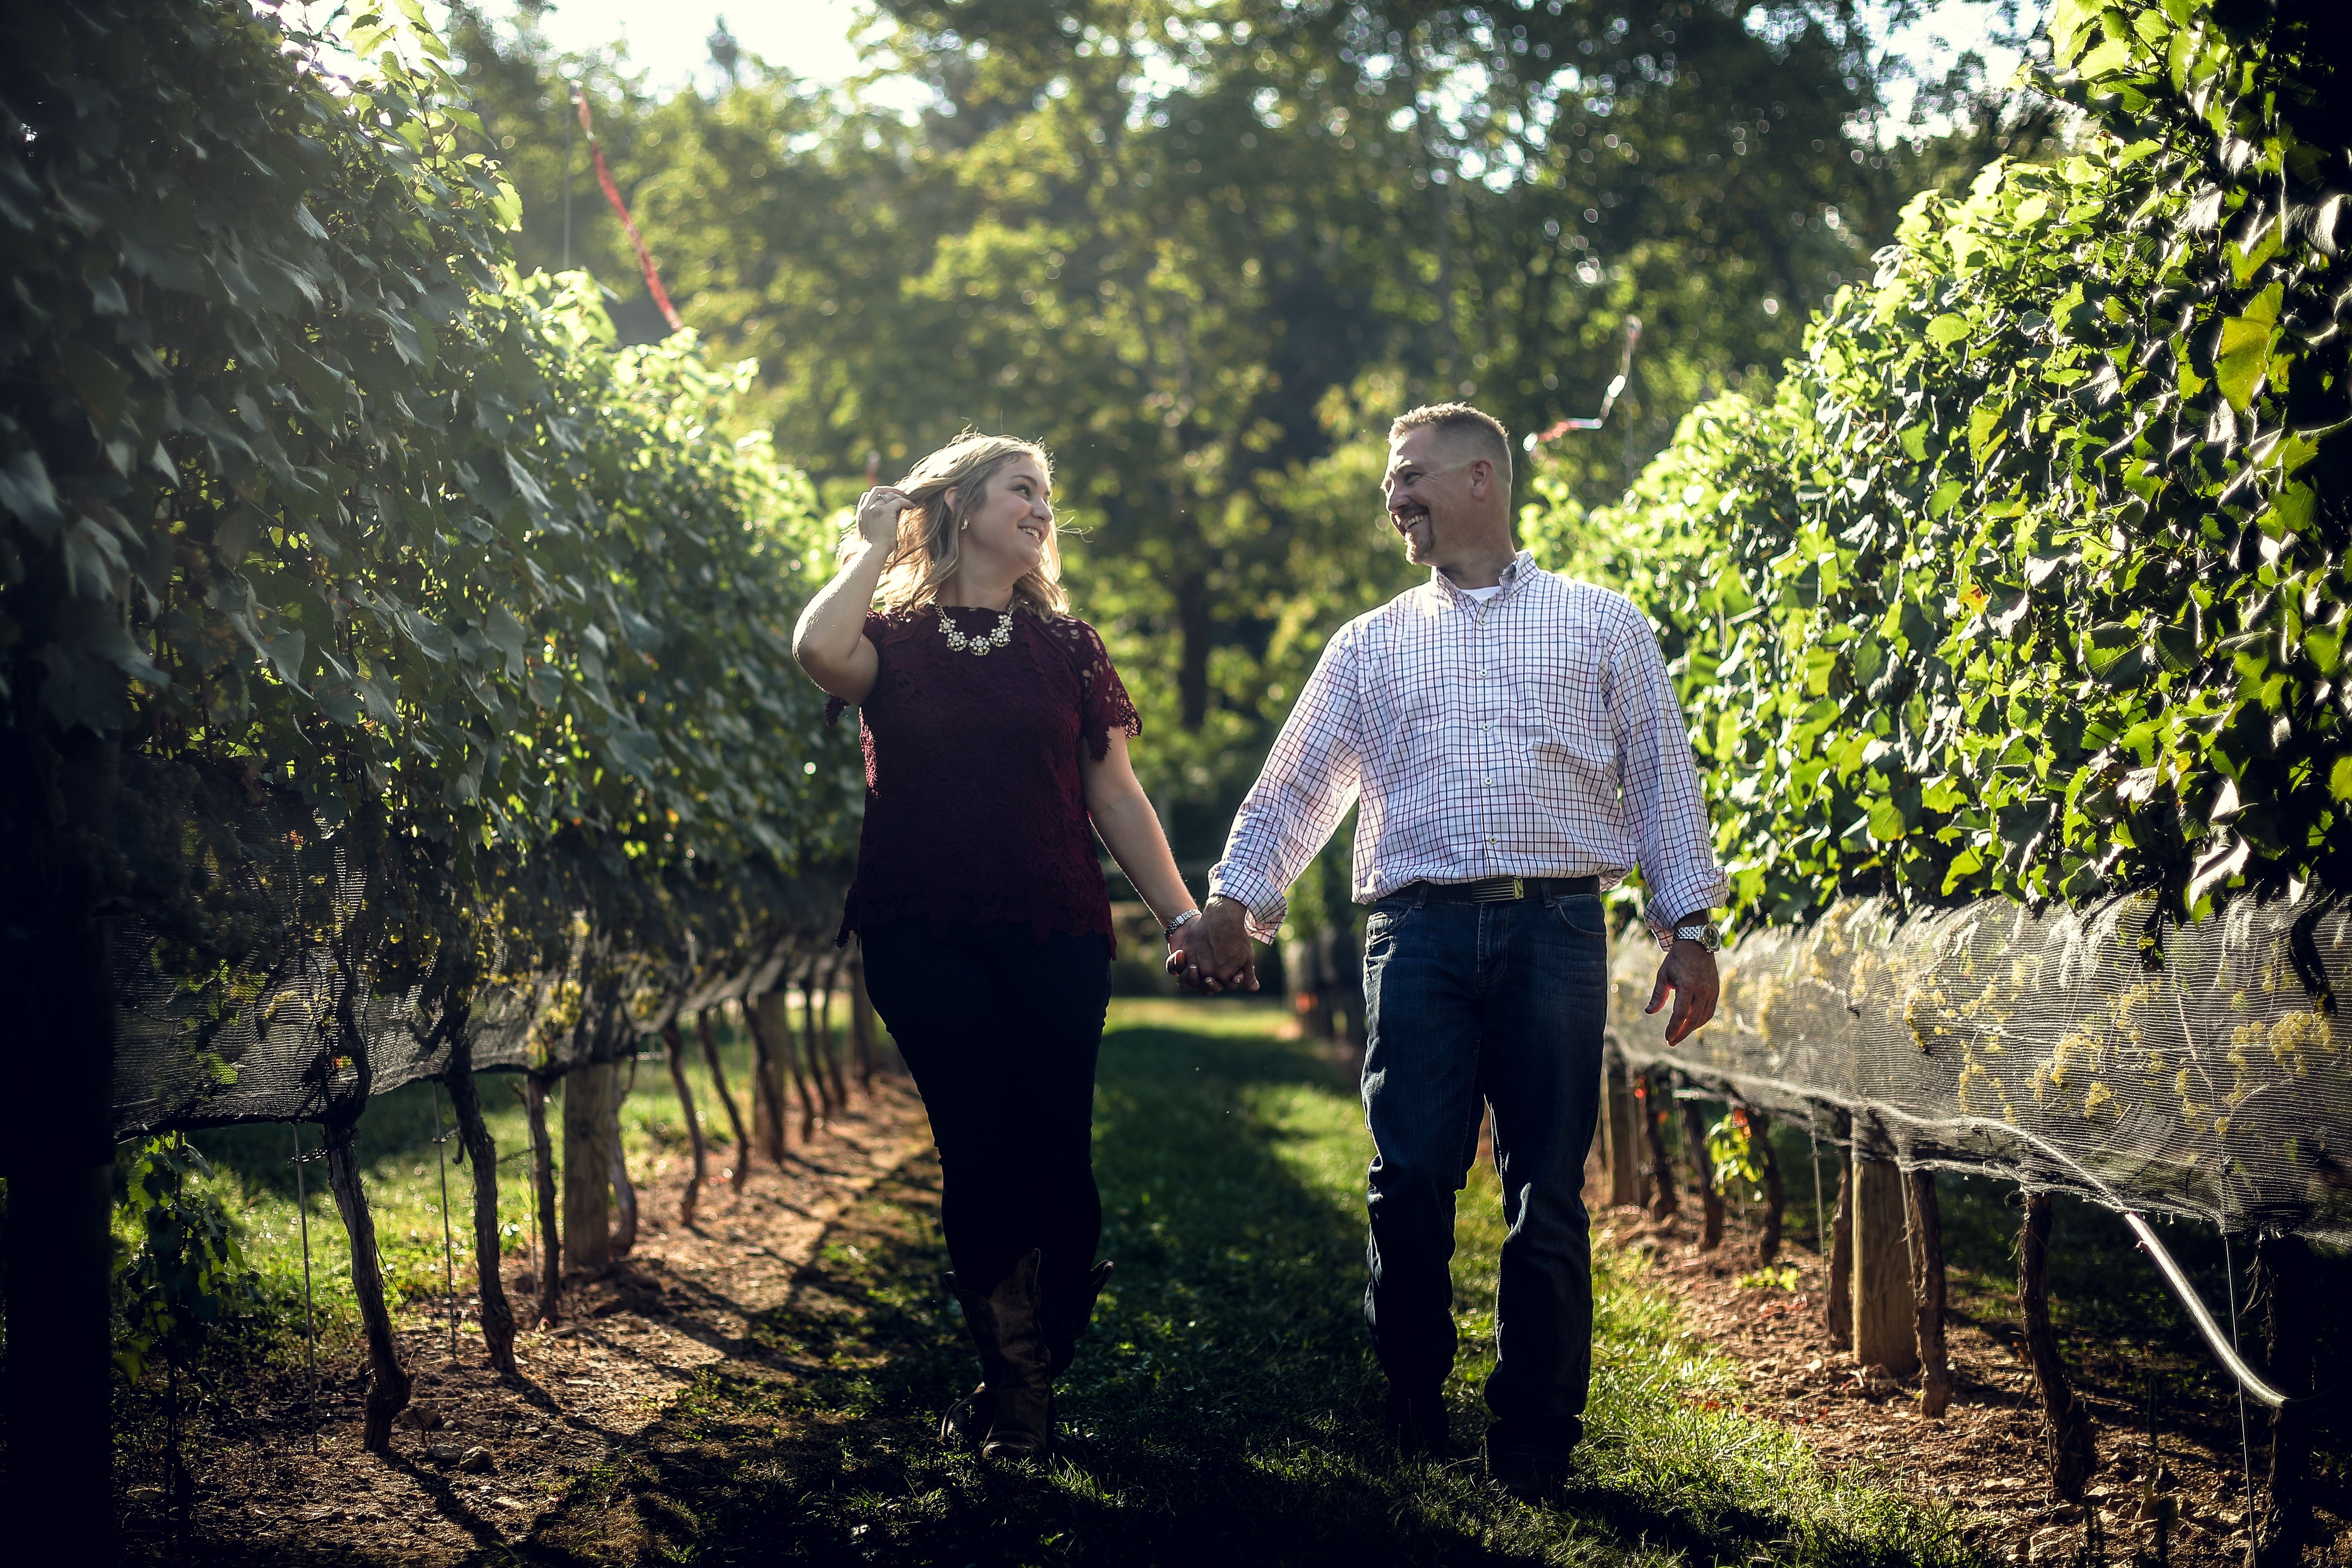 Happiness In The Vineyard Intimate Events At Maple Springs